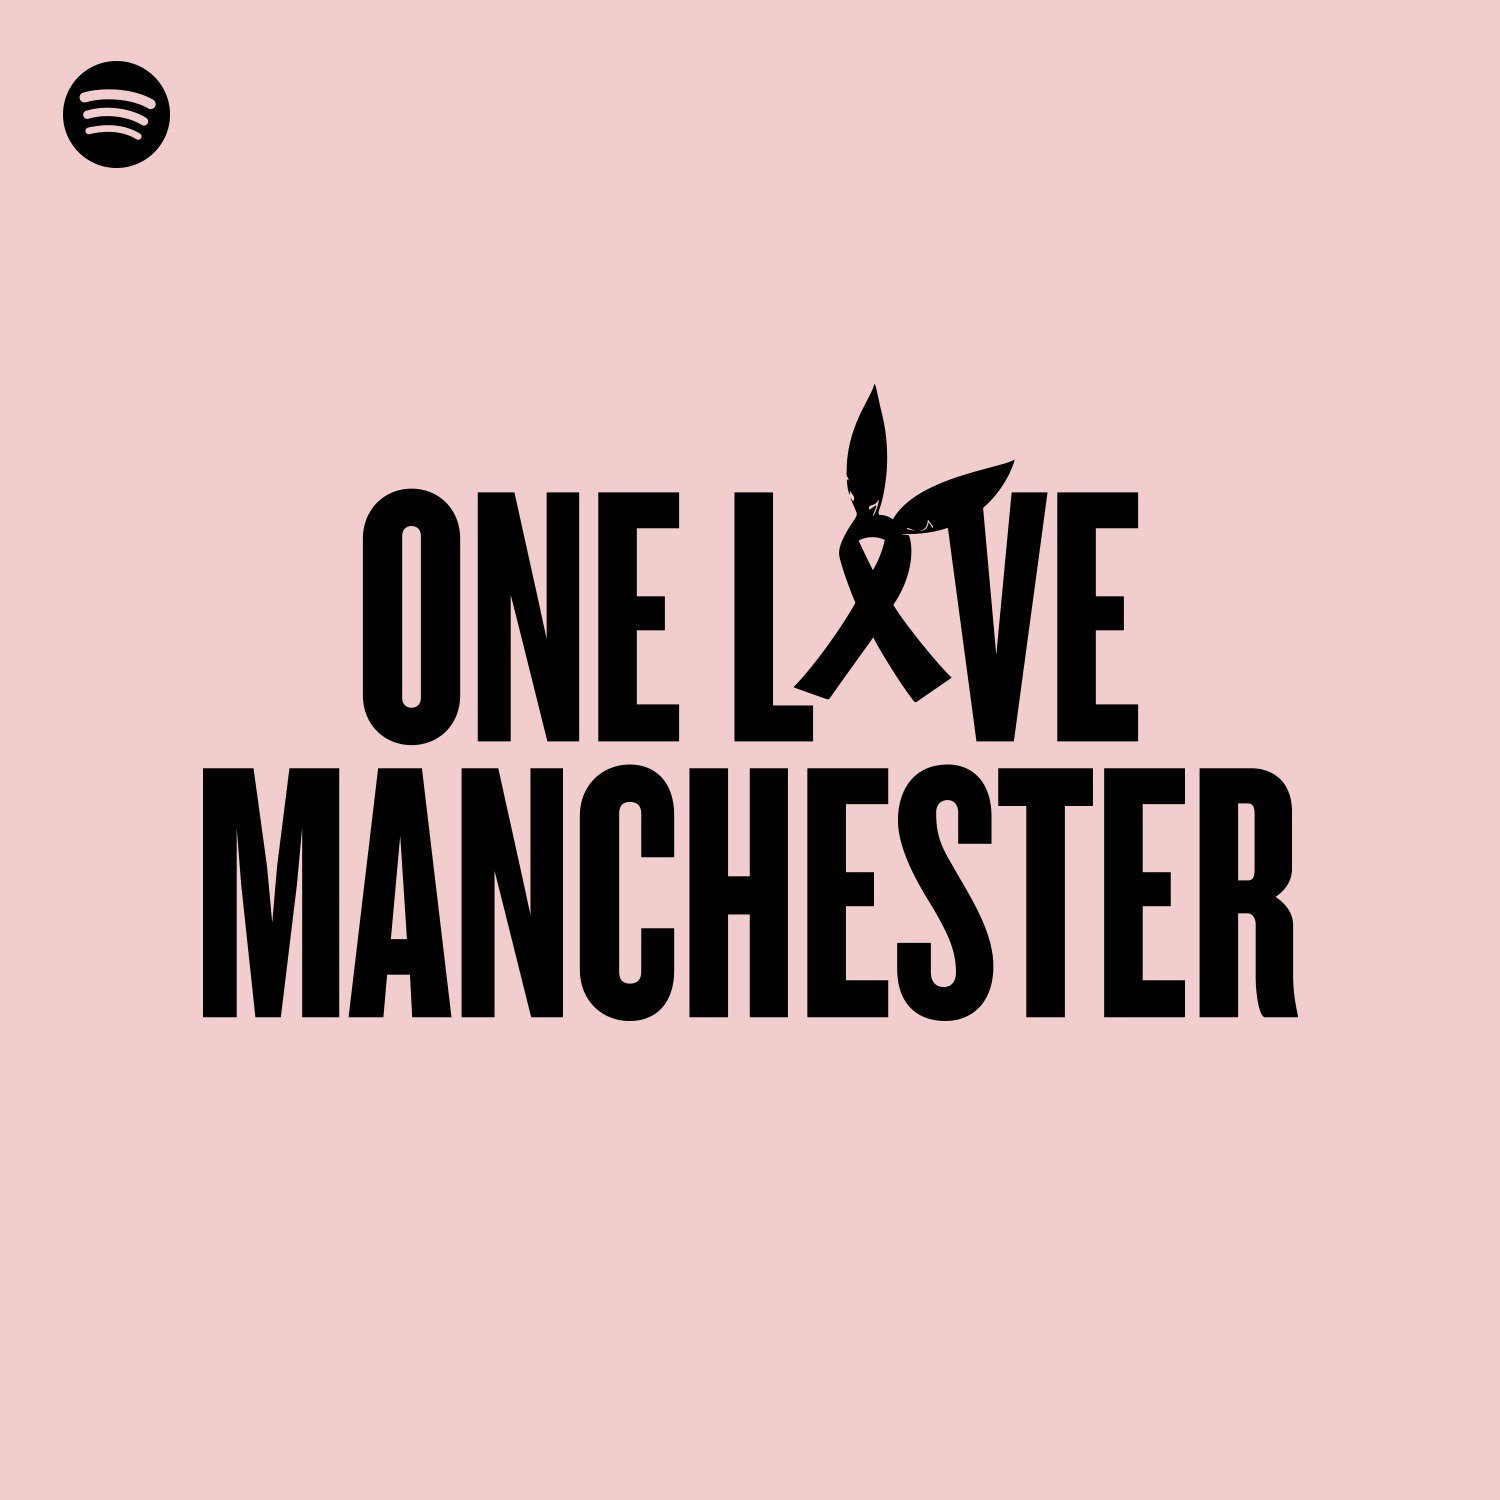 On Sunday, @ArianaGrande & other artists came together at #OneLoveManchester  Listen here: https://t.co/lIyhgzO8M1 https://t.co/nQNJzyj7Ip